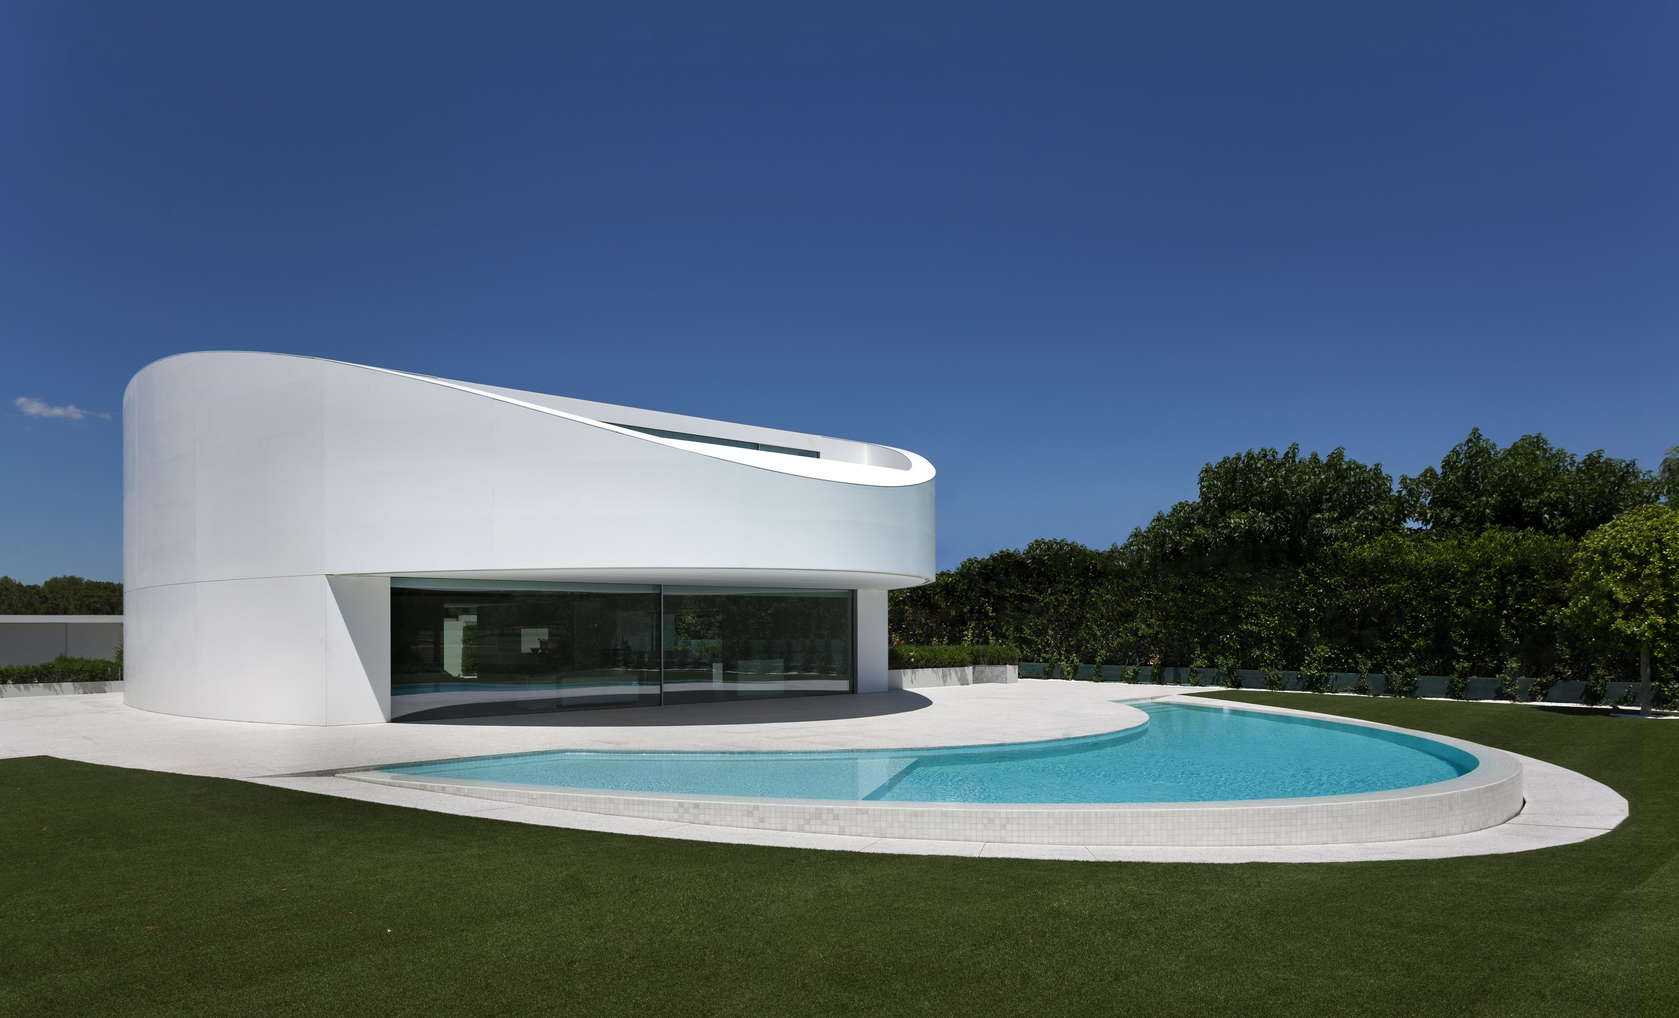 Amazing House Exterior - Golf course views and a striking exterior make for a modern marvel